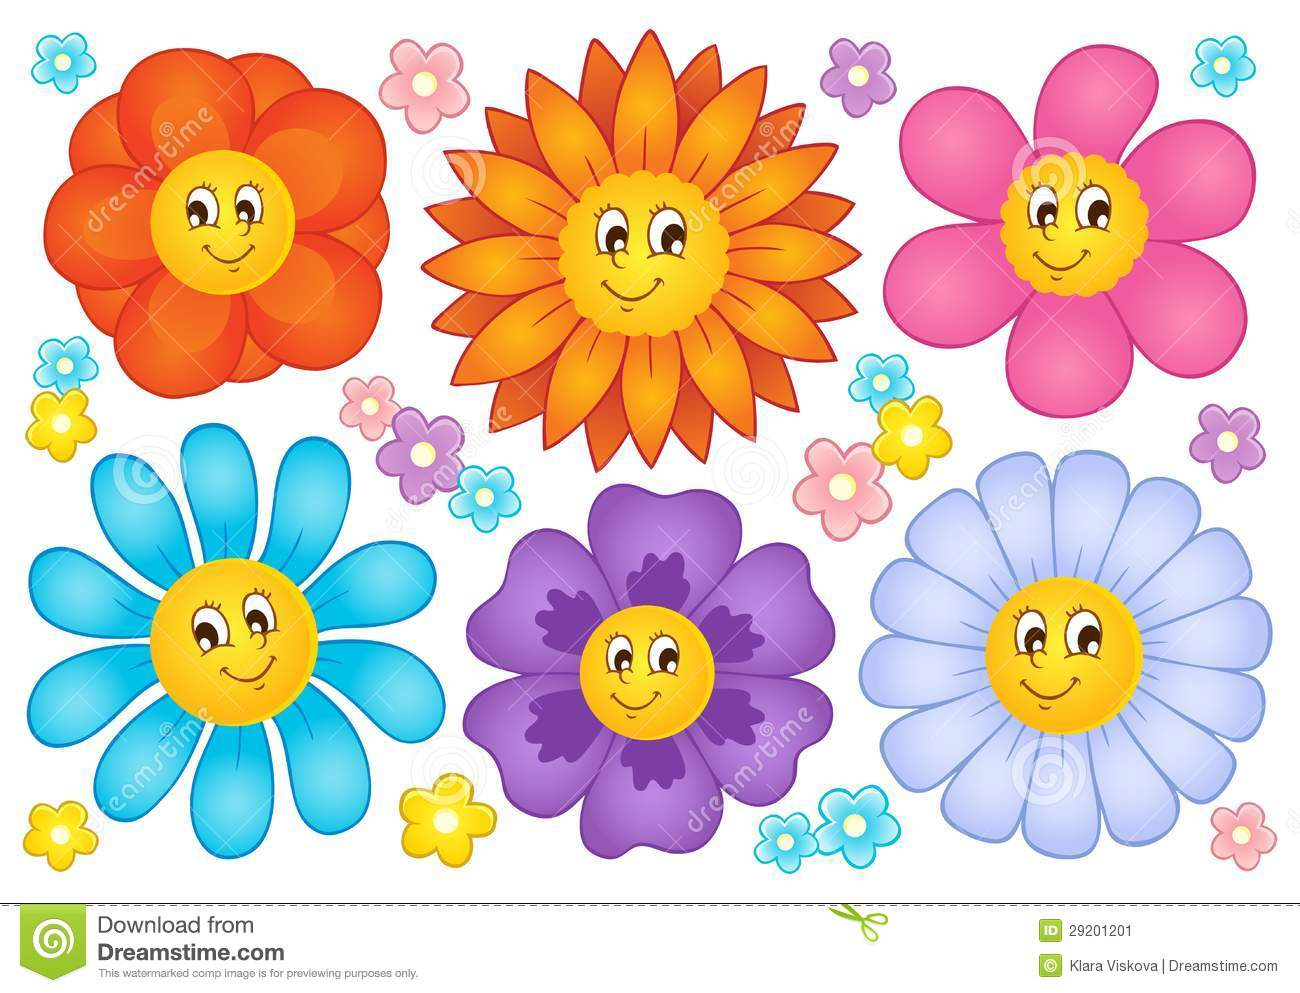 Cartoon flowers collection stock vector. Illustration of